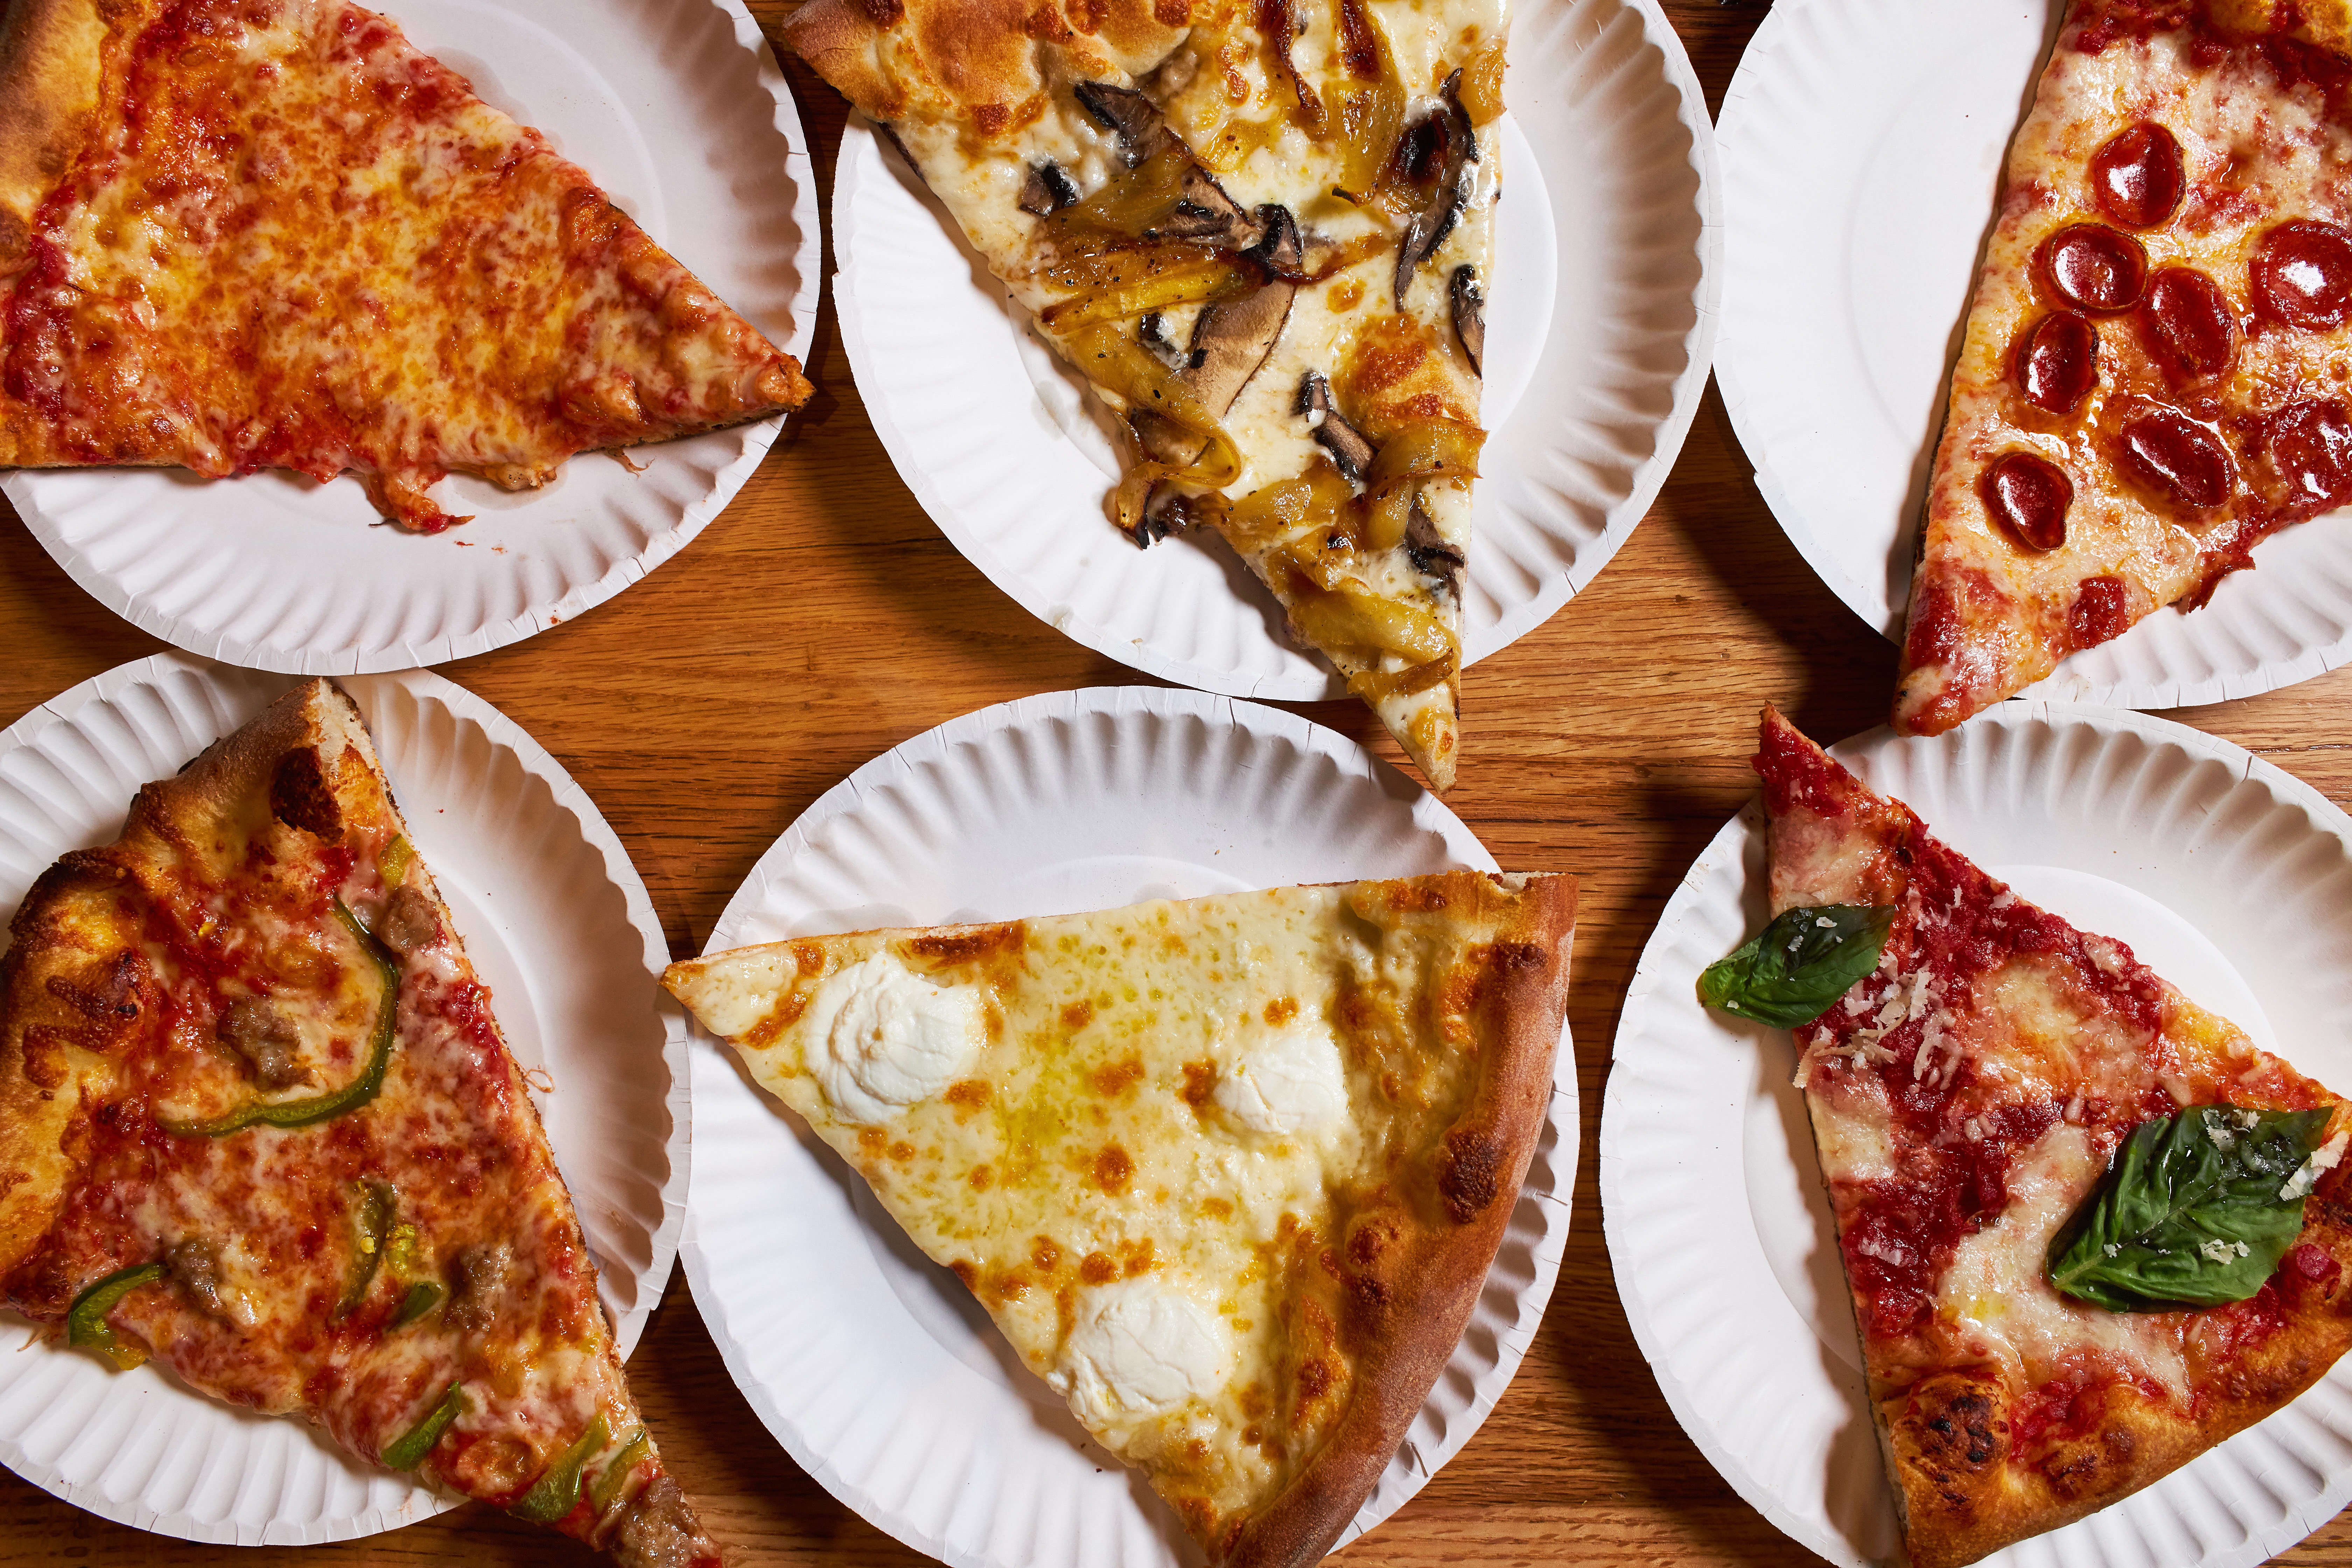 Several slices on pizza on paper plates on a table.